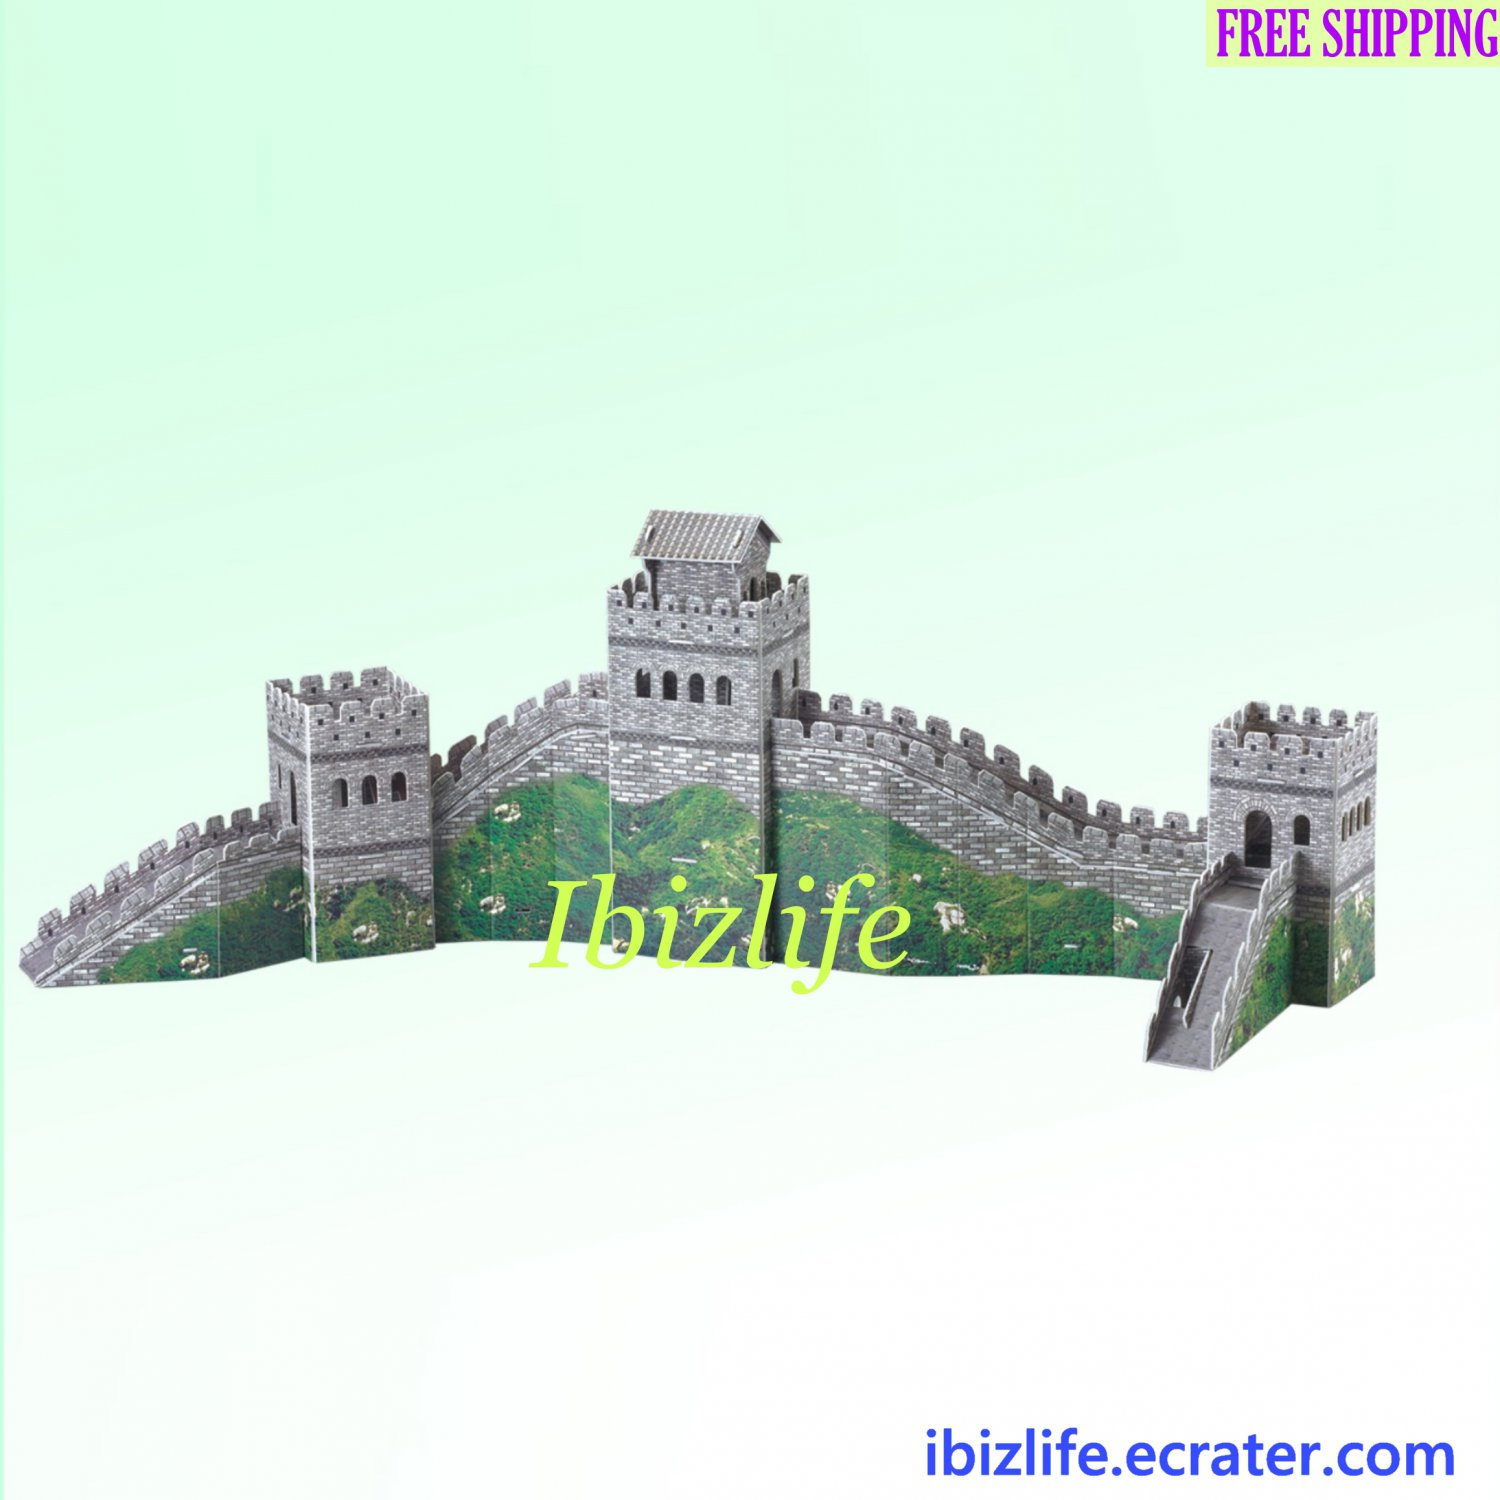 Great Wall - China 3D Puzzle 48 pcs DIY Jigsaw model as gift (pc50)